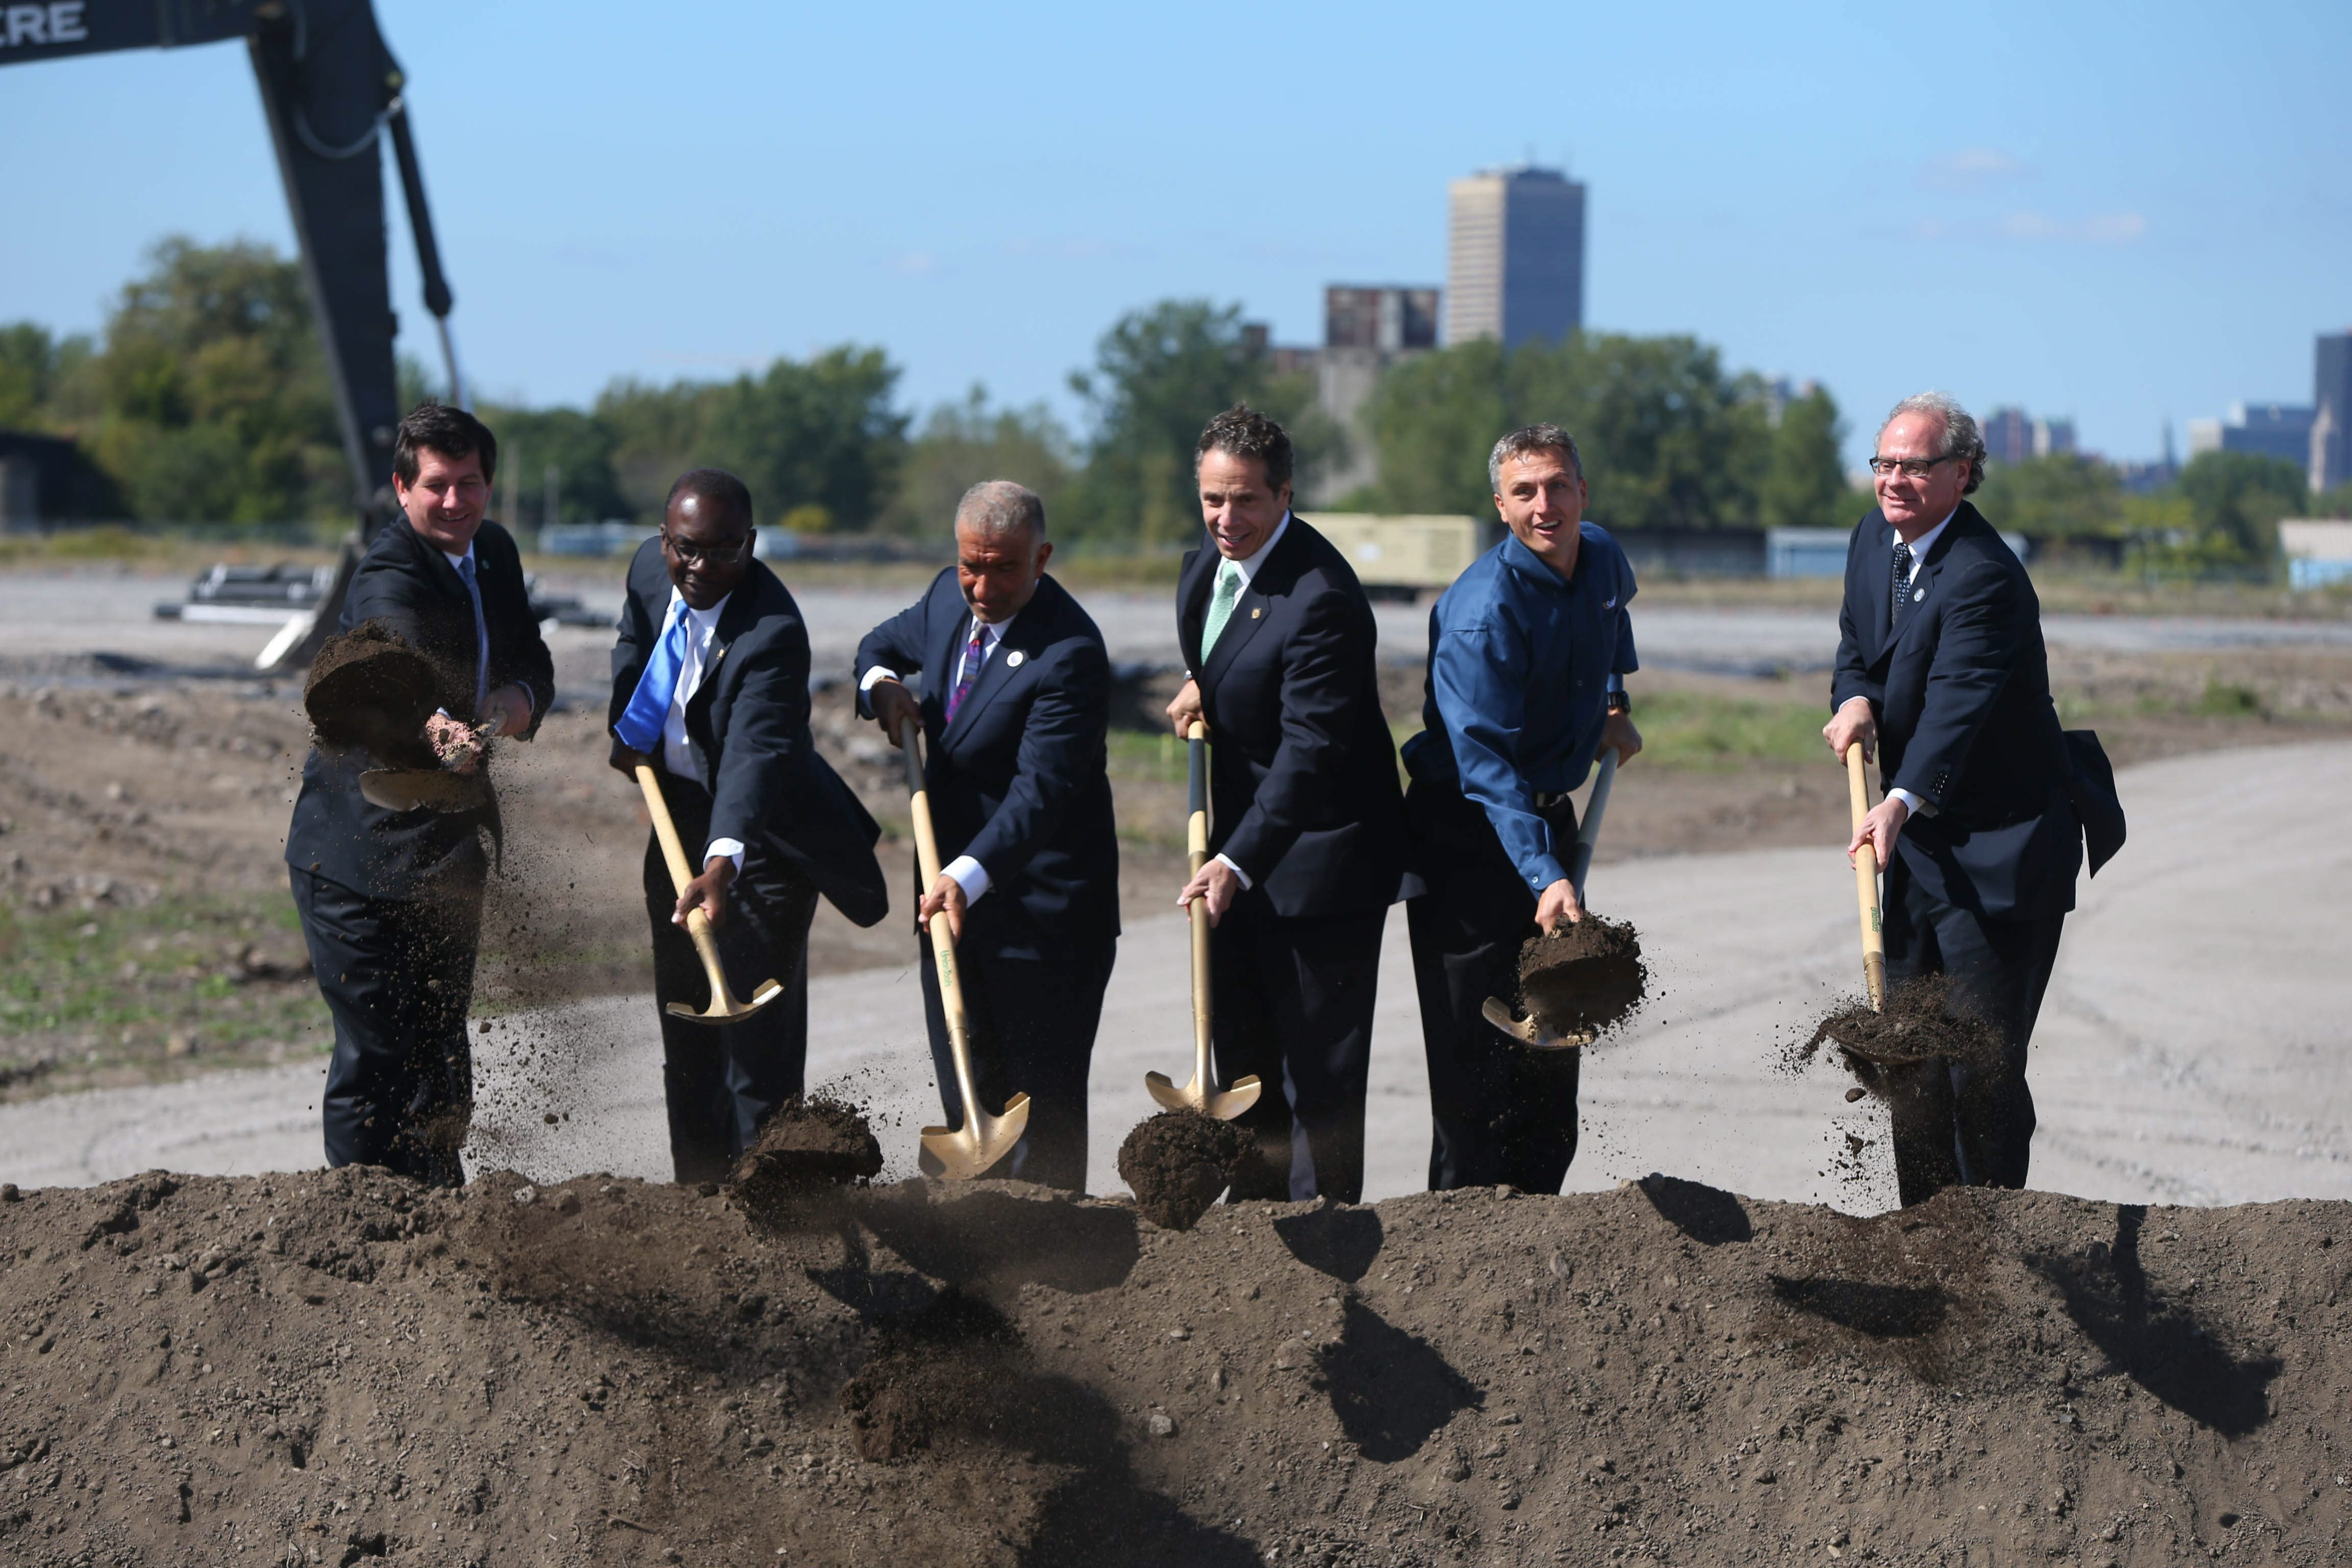 From left to right: County Exec. Mark Poloncarz, Mayor Byron Brown, Dr. Alain E. Kaloyeros, Gov. Andrew Cuomo, SolarCity CEO Lyndon Rive, and Howard Zemsky throw ceremonial shovels of dirt  during the announcement of the Riverbend project in South Buffalo Tuesday, September 23, 2014.  (Mark Mulville/Buffalo News)